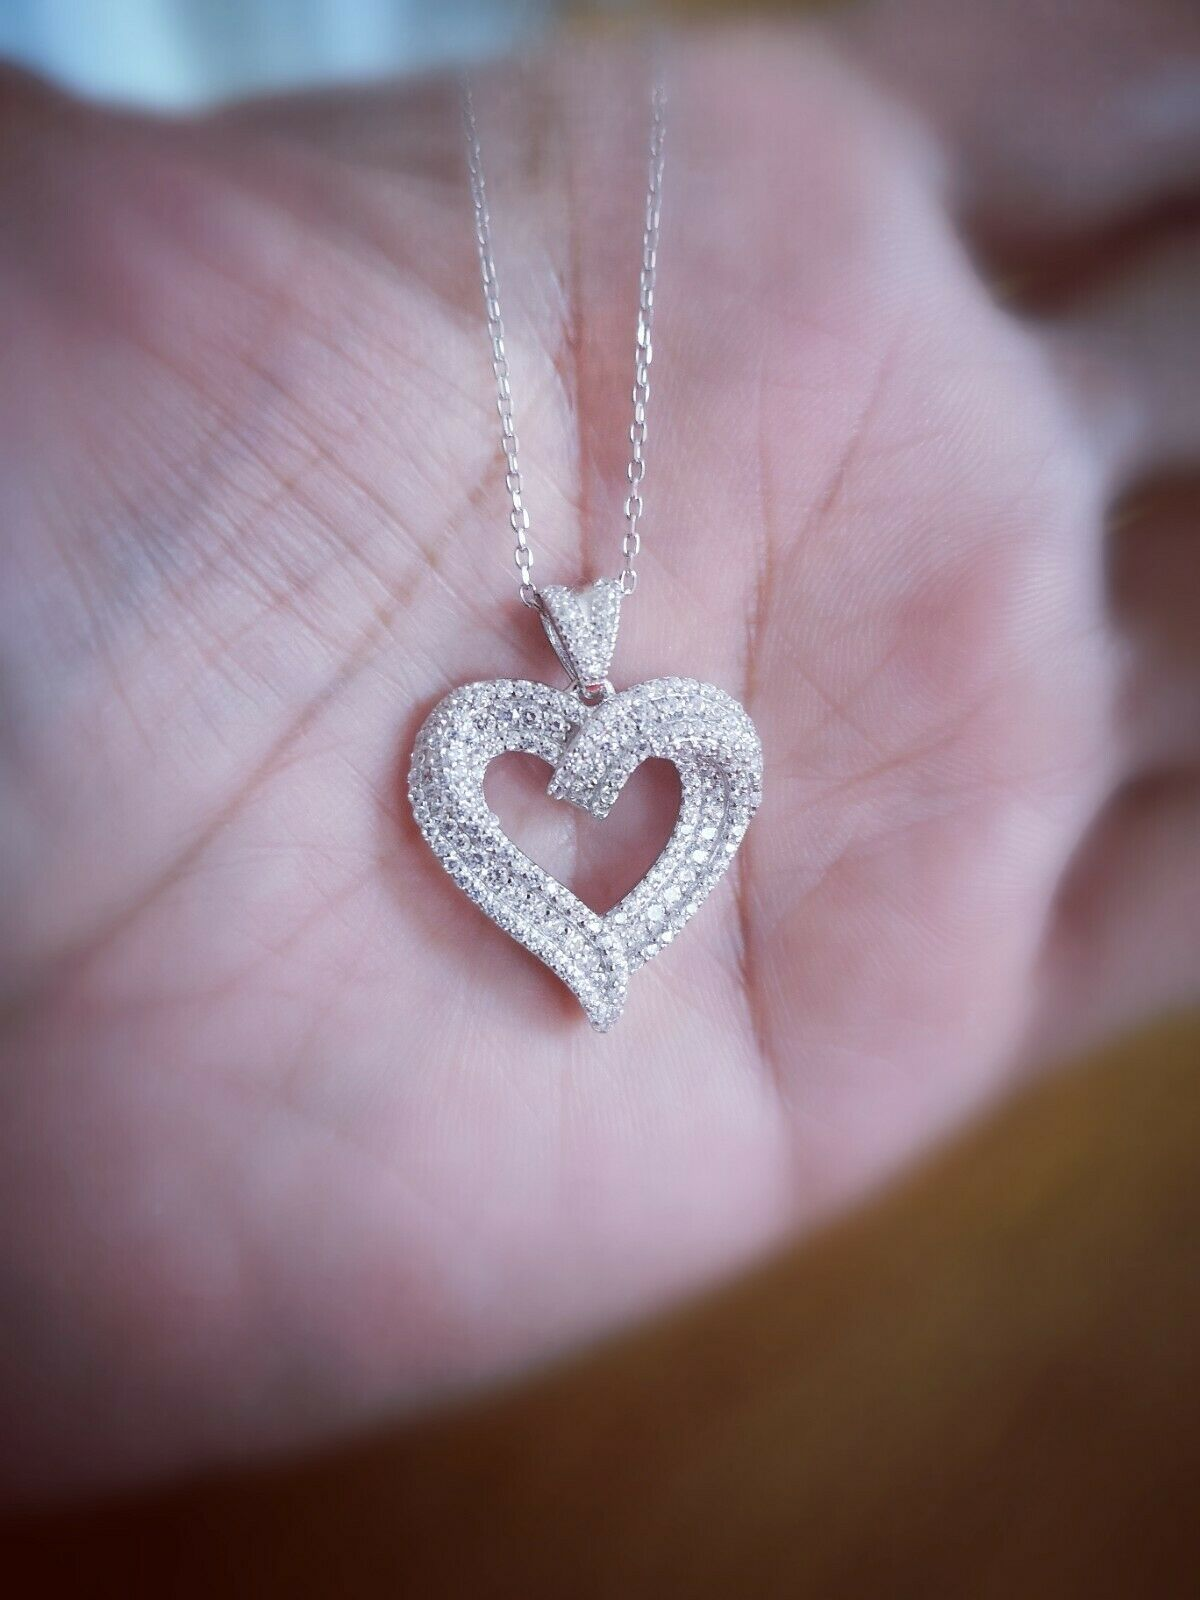 2 Ct Diamond Heart Necklace with 14K White Gold over Chain Womens Heart Pendant